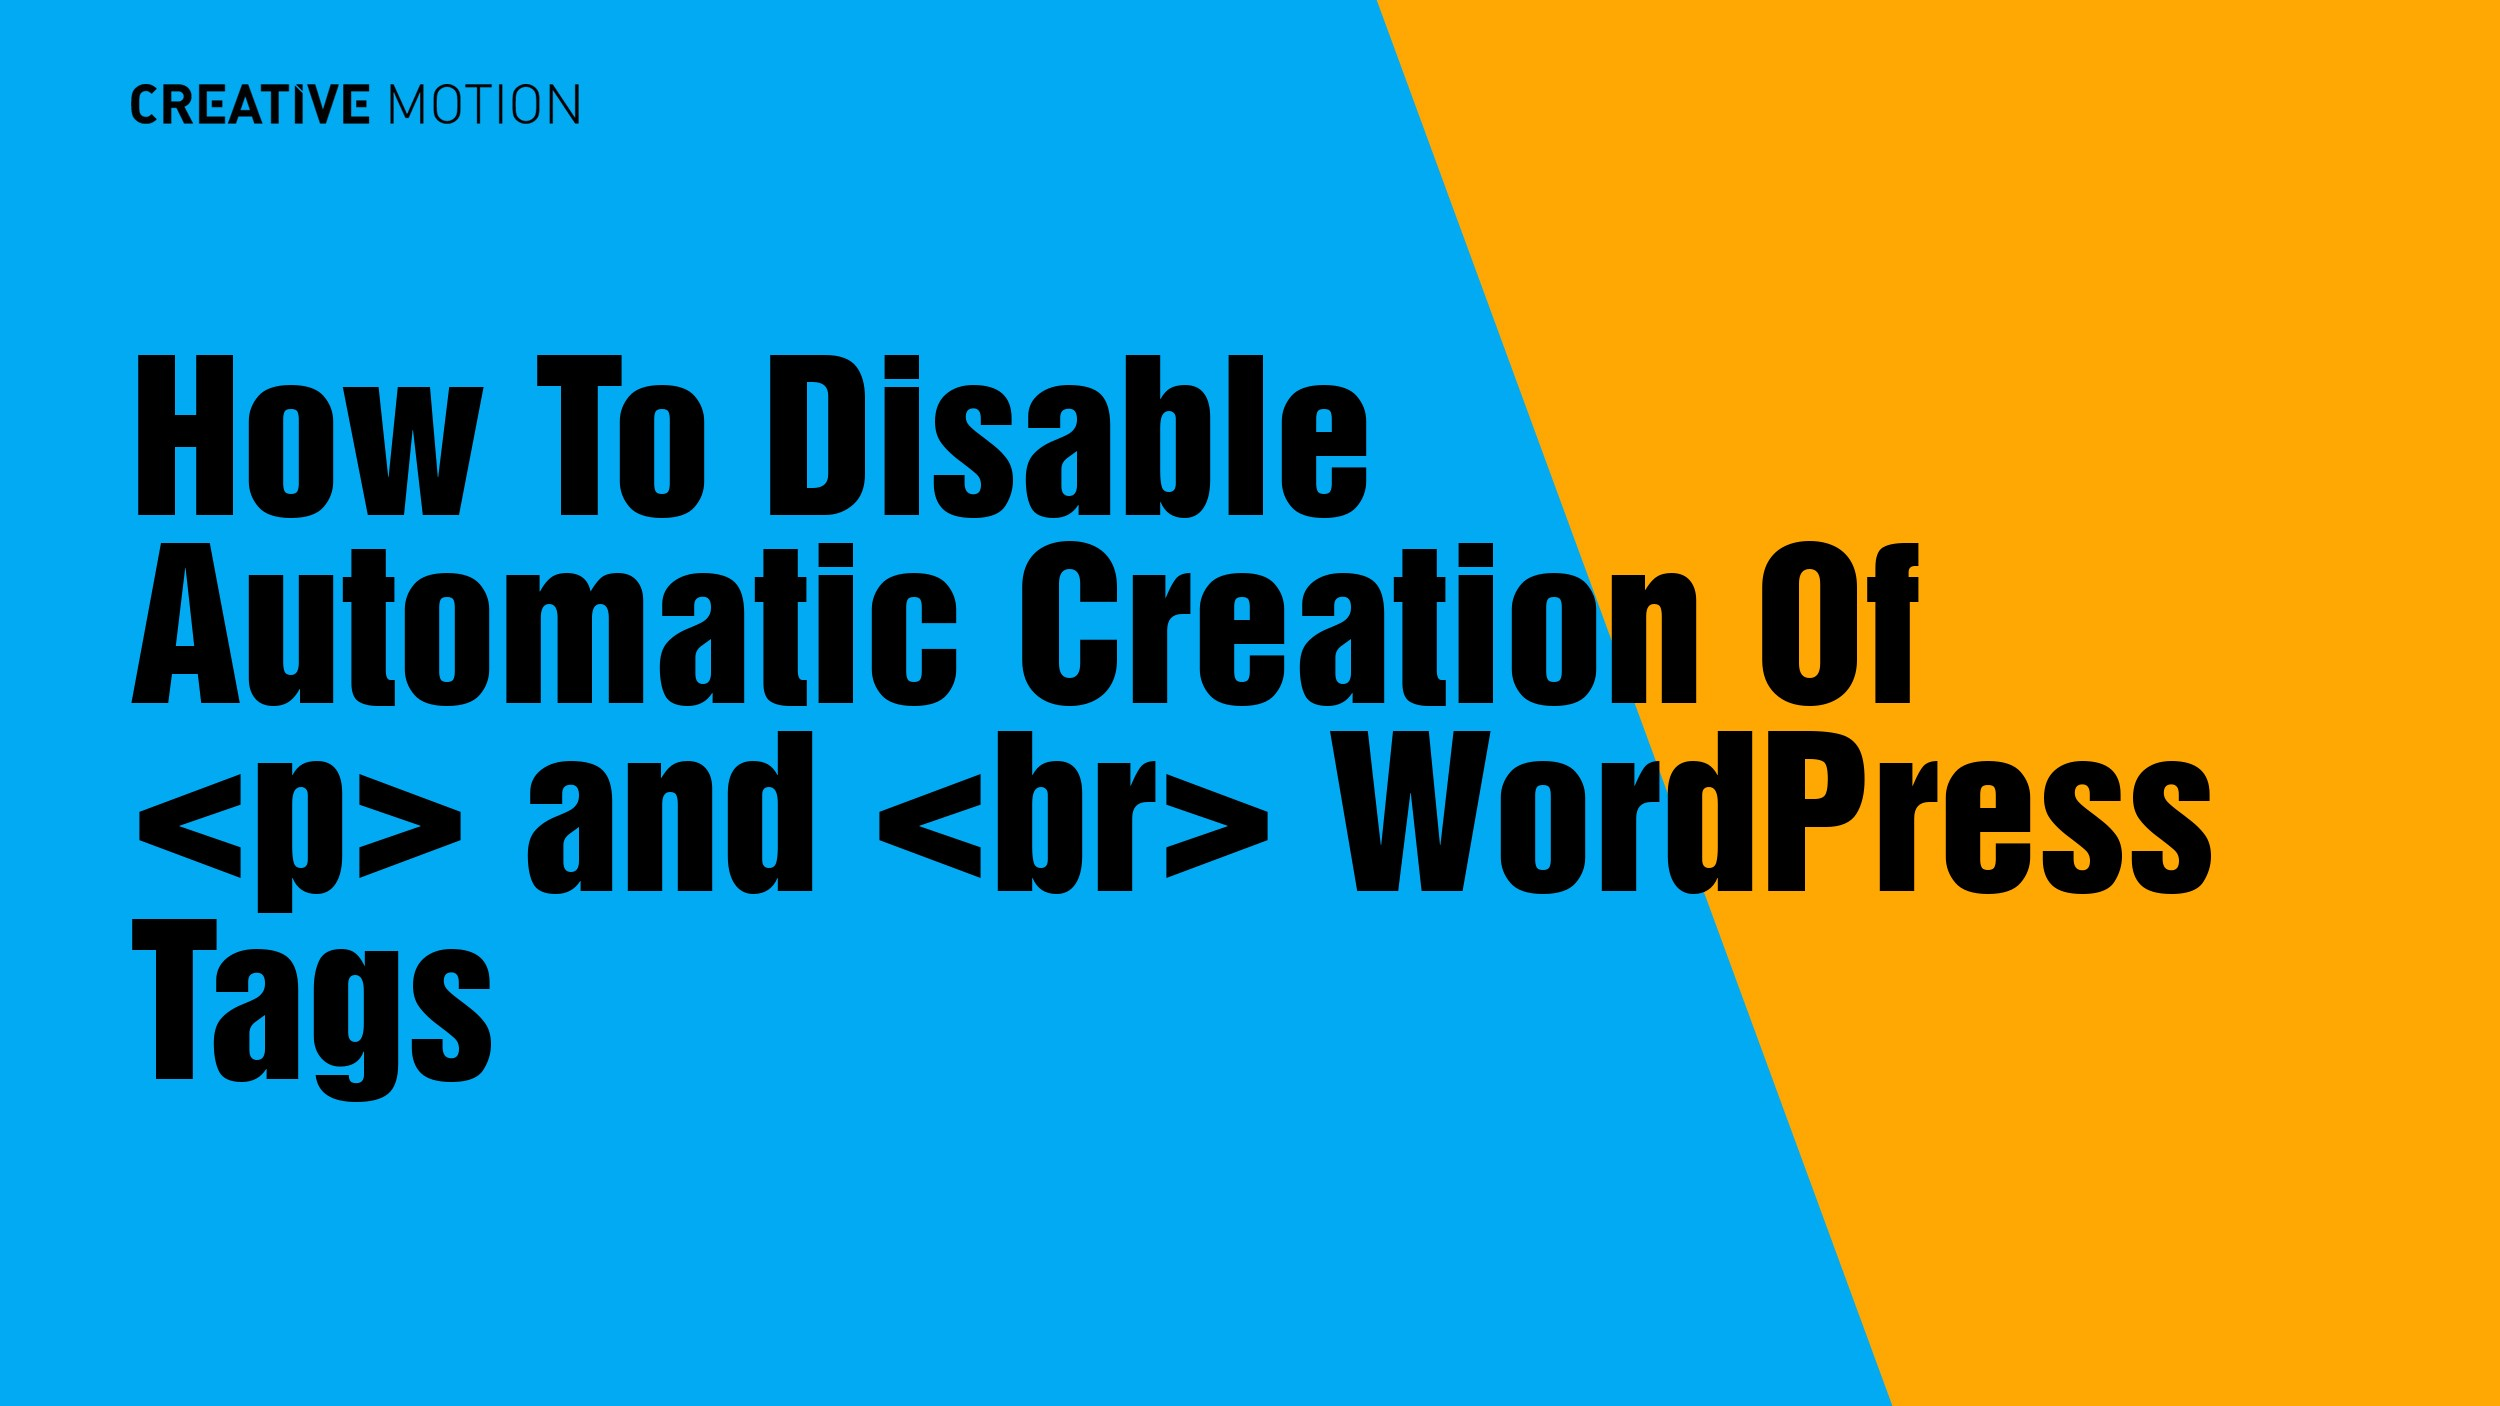 How To Disable Automatic Creation Of <p> and <br> WordPress Tags